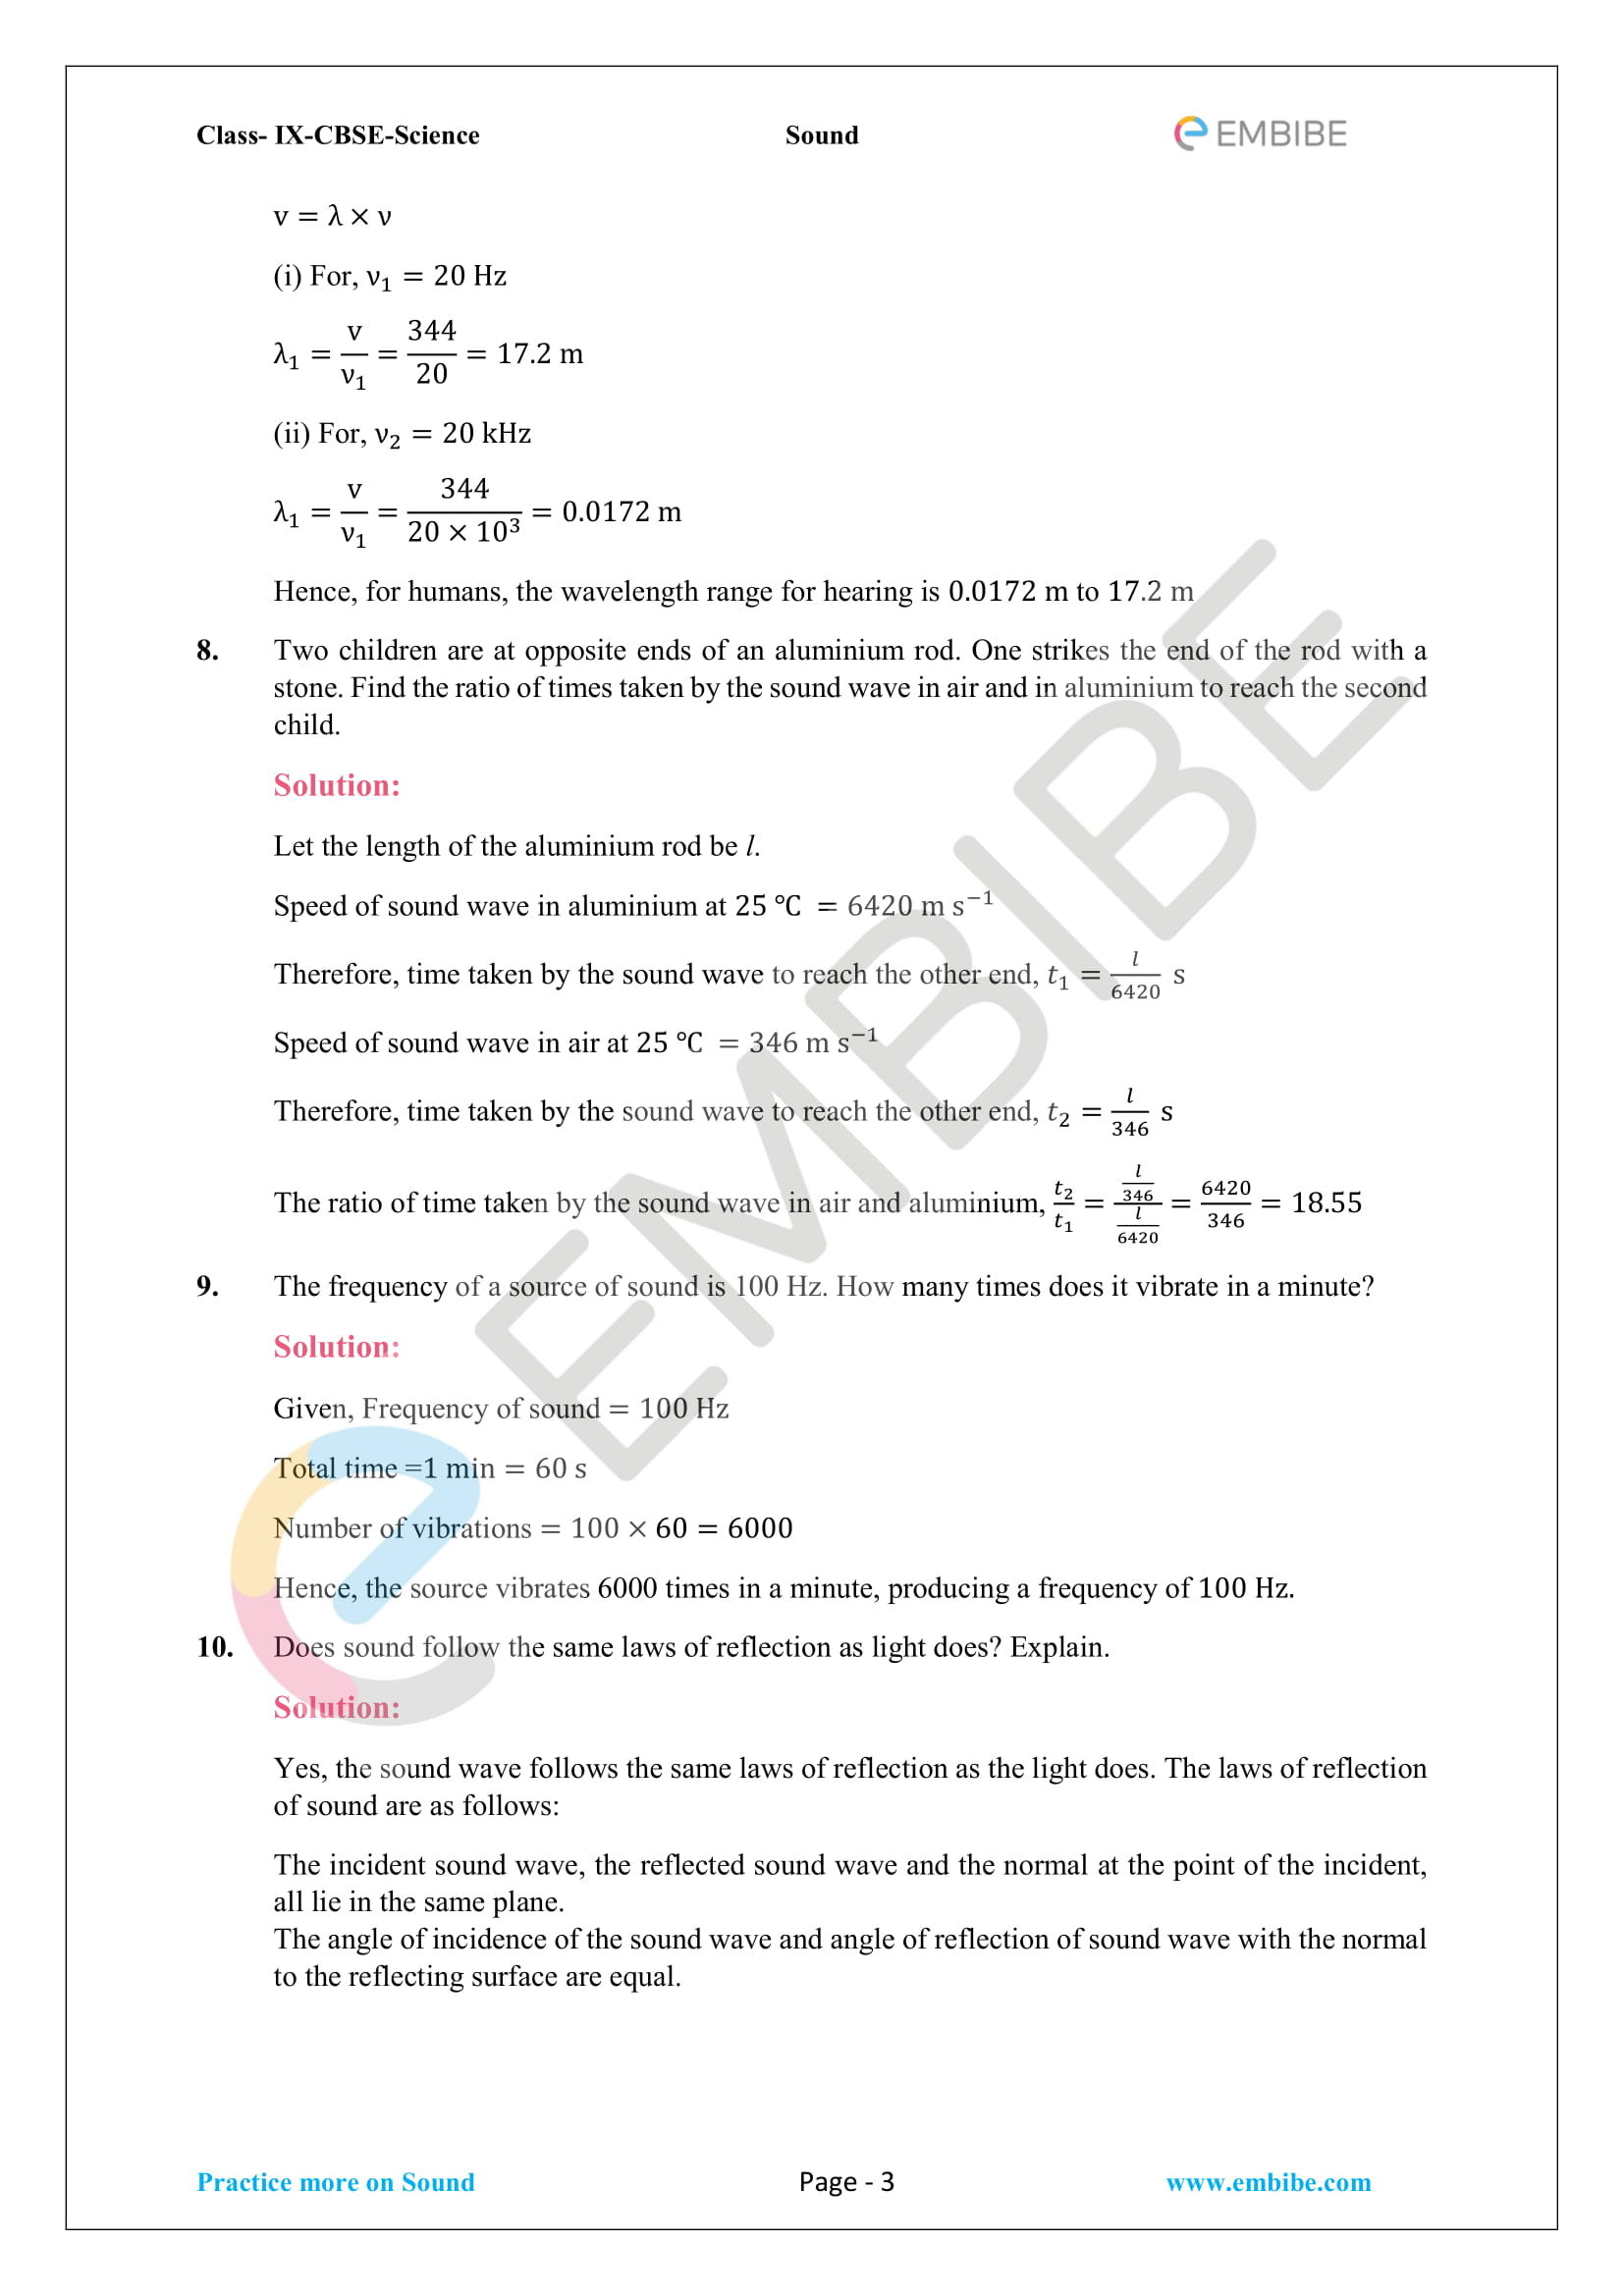 CBSE NCERT Solutions For Class 9 Science Chapter 12 - Sound - 3